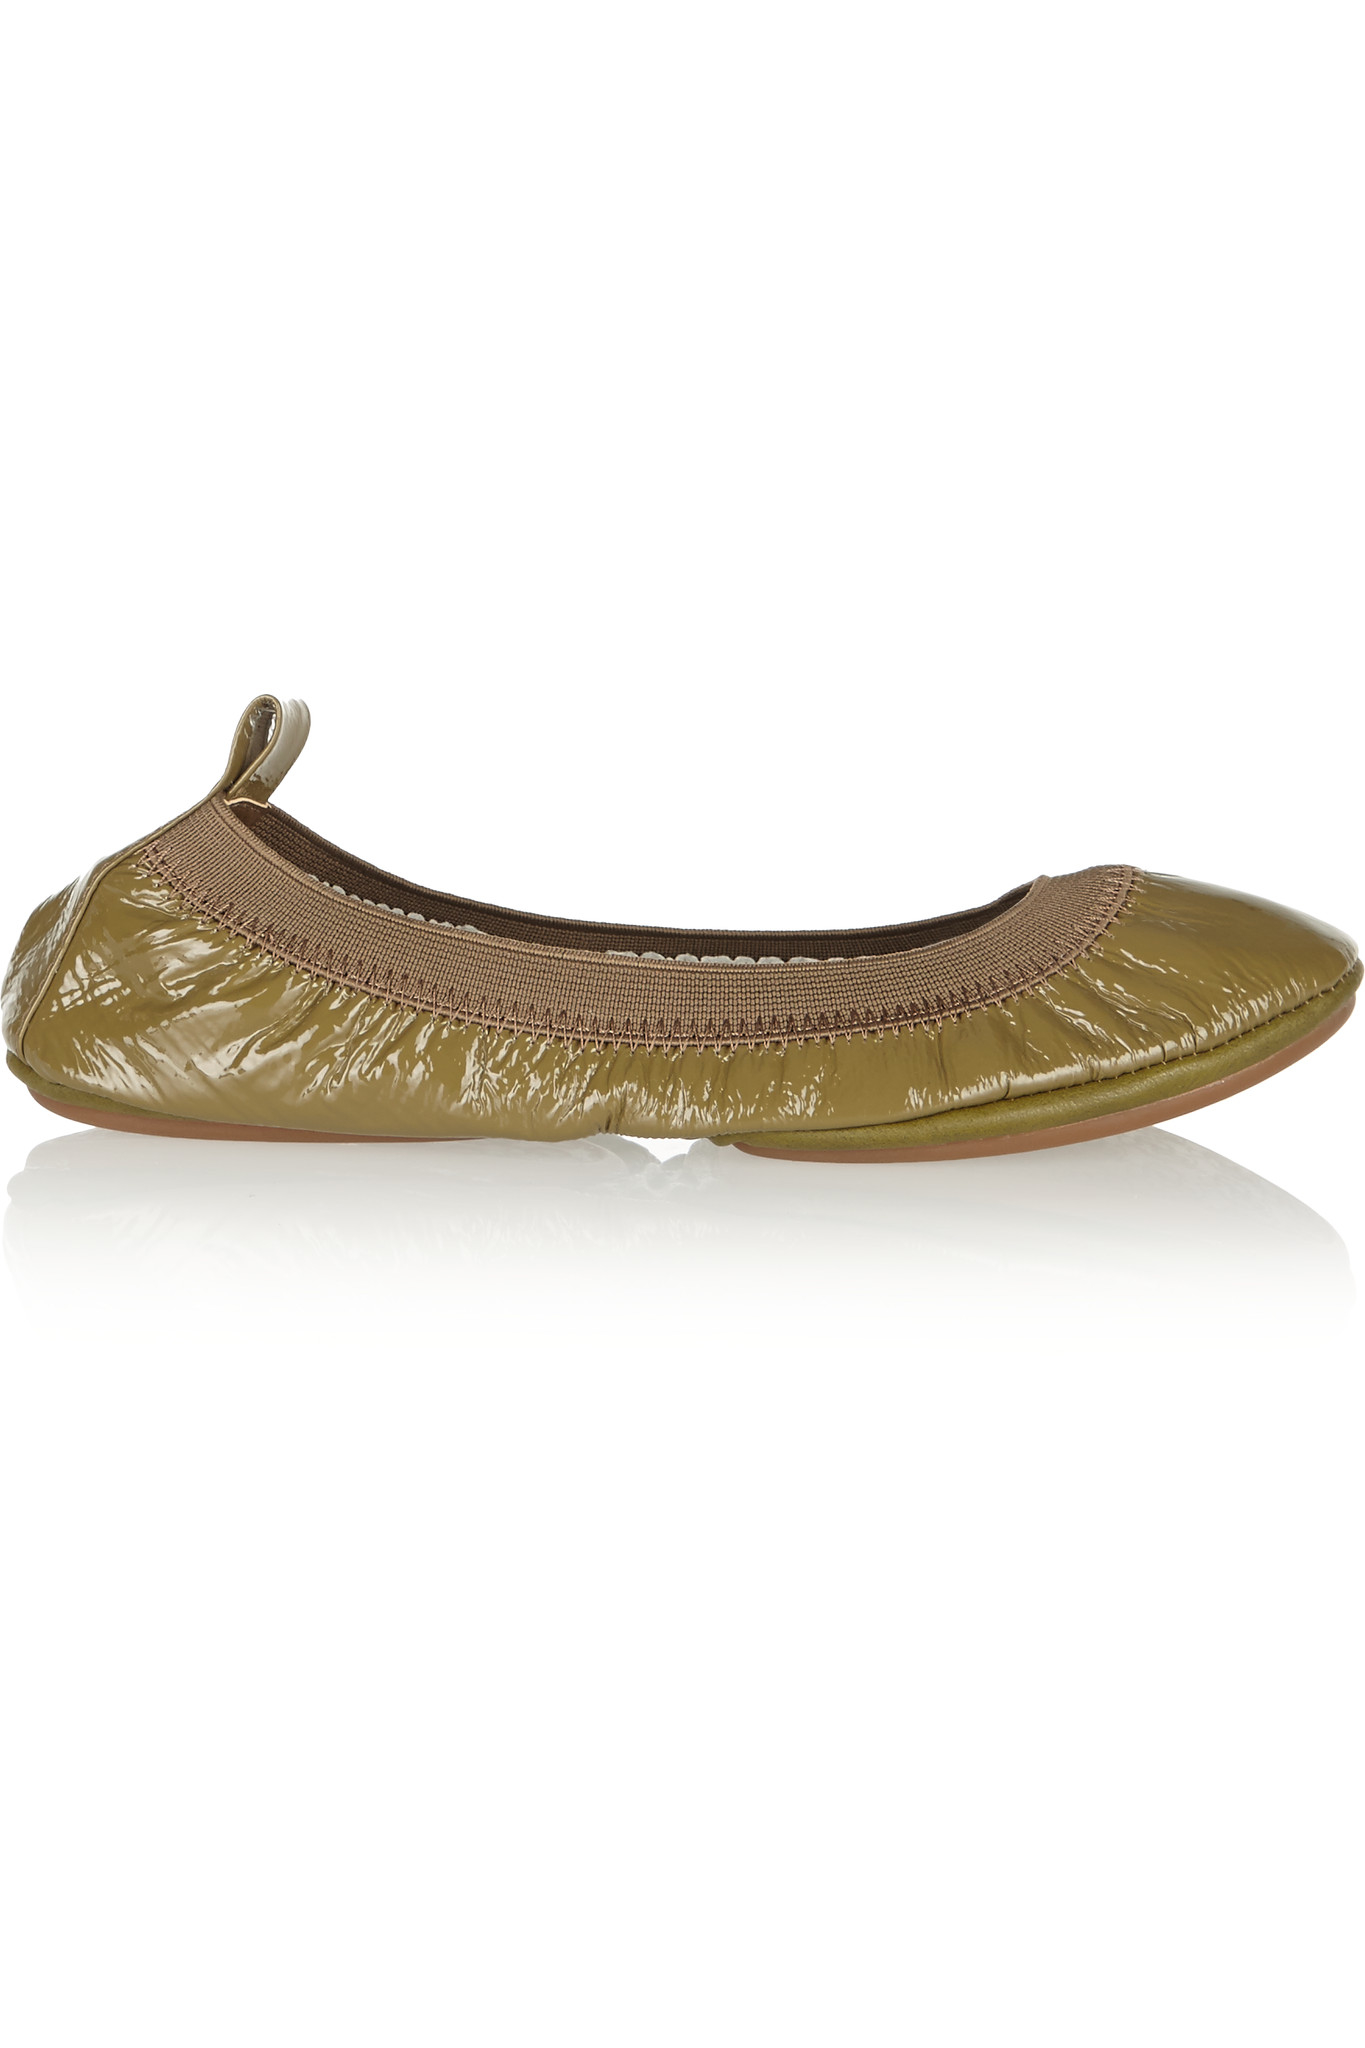 Fold-up ballet flats are a wonderful choice of footwear, very versatile and easy to wear. The comfort offered by these flexible flat shoes make them a great option for walking to work in. They can simply be folded up and placed in a purse when not in use.